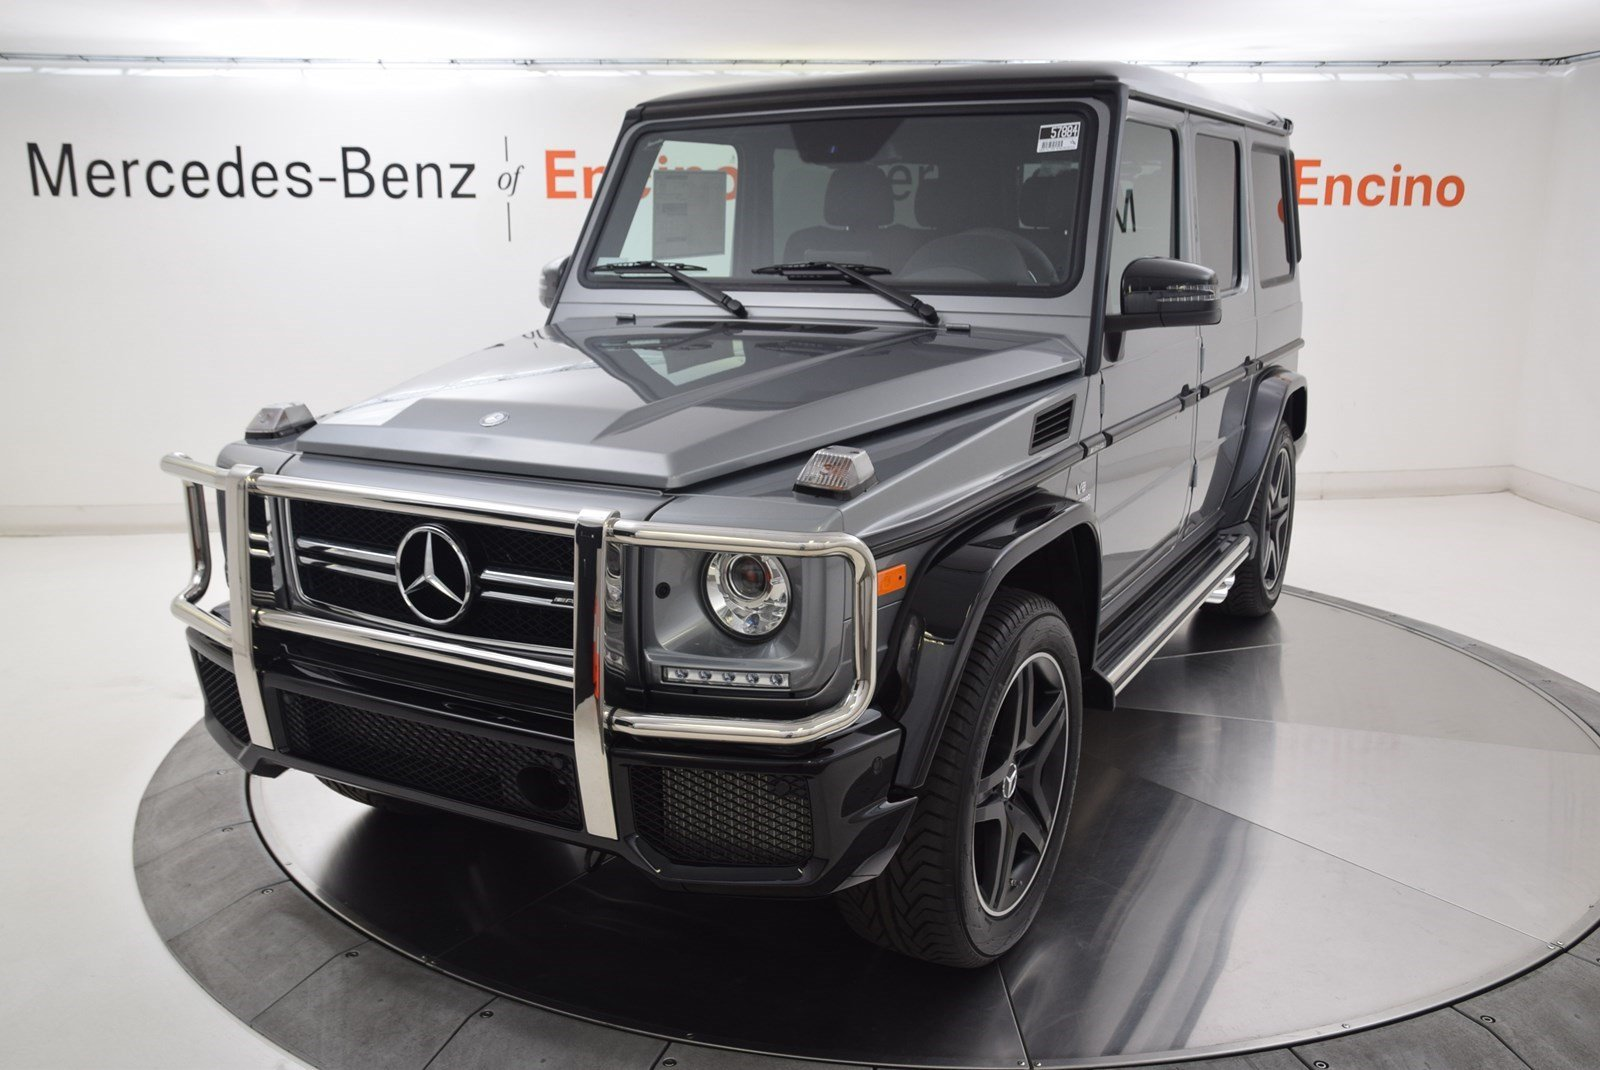 new 2017 mercedes benz g class amg g 63 4matic sport utility in encino 57884 mercedes benz. Black Bedroom Furniture Sets. Home Design Ideas